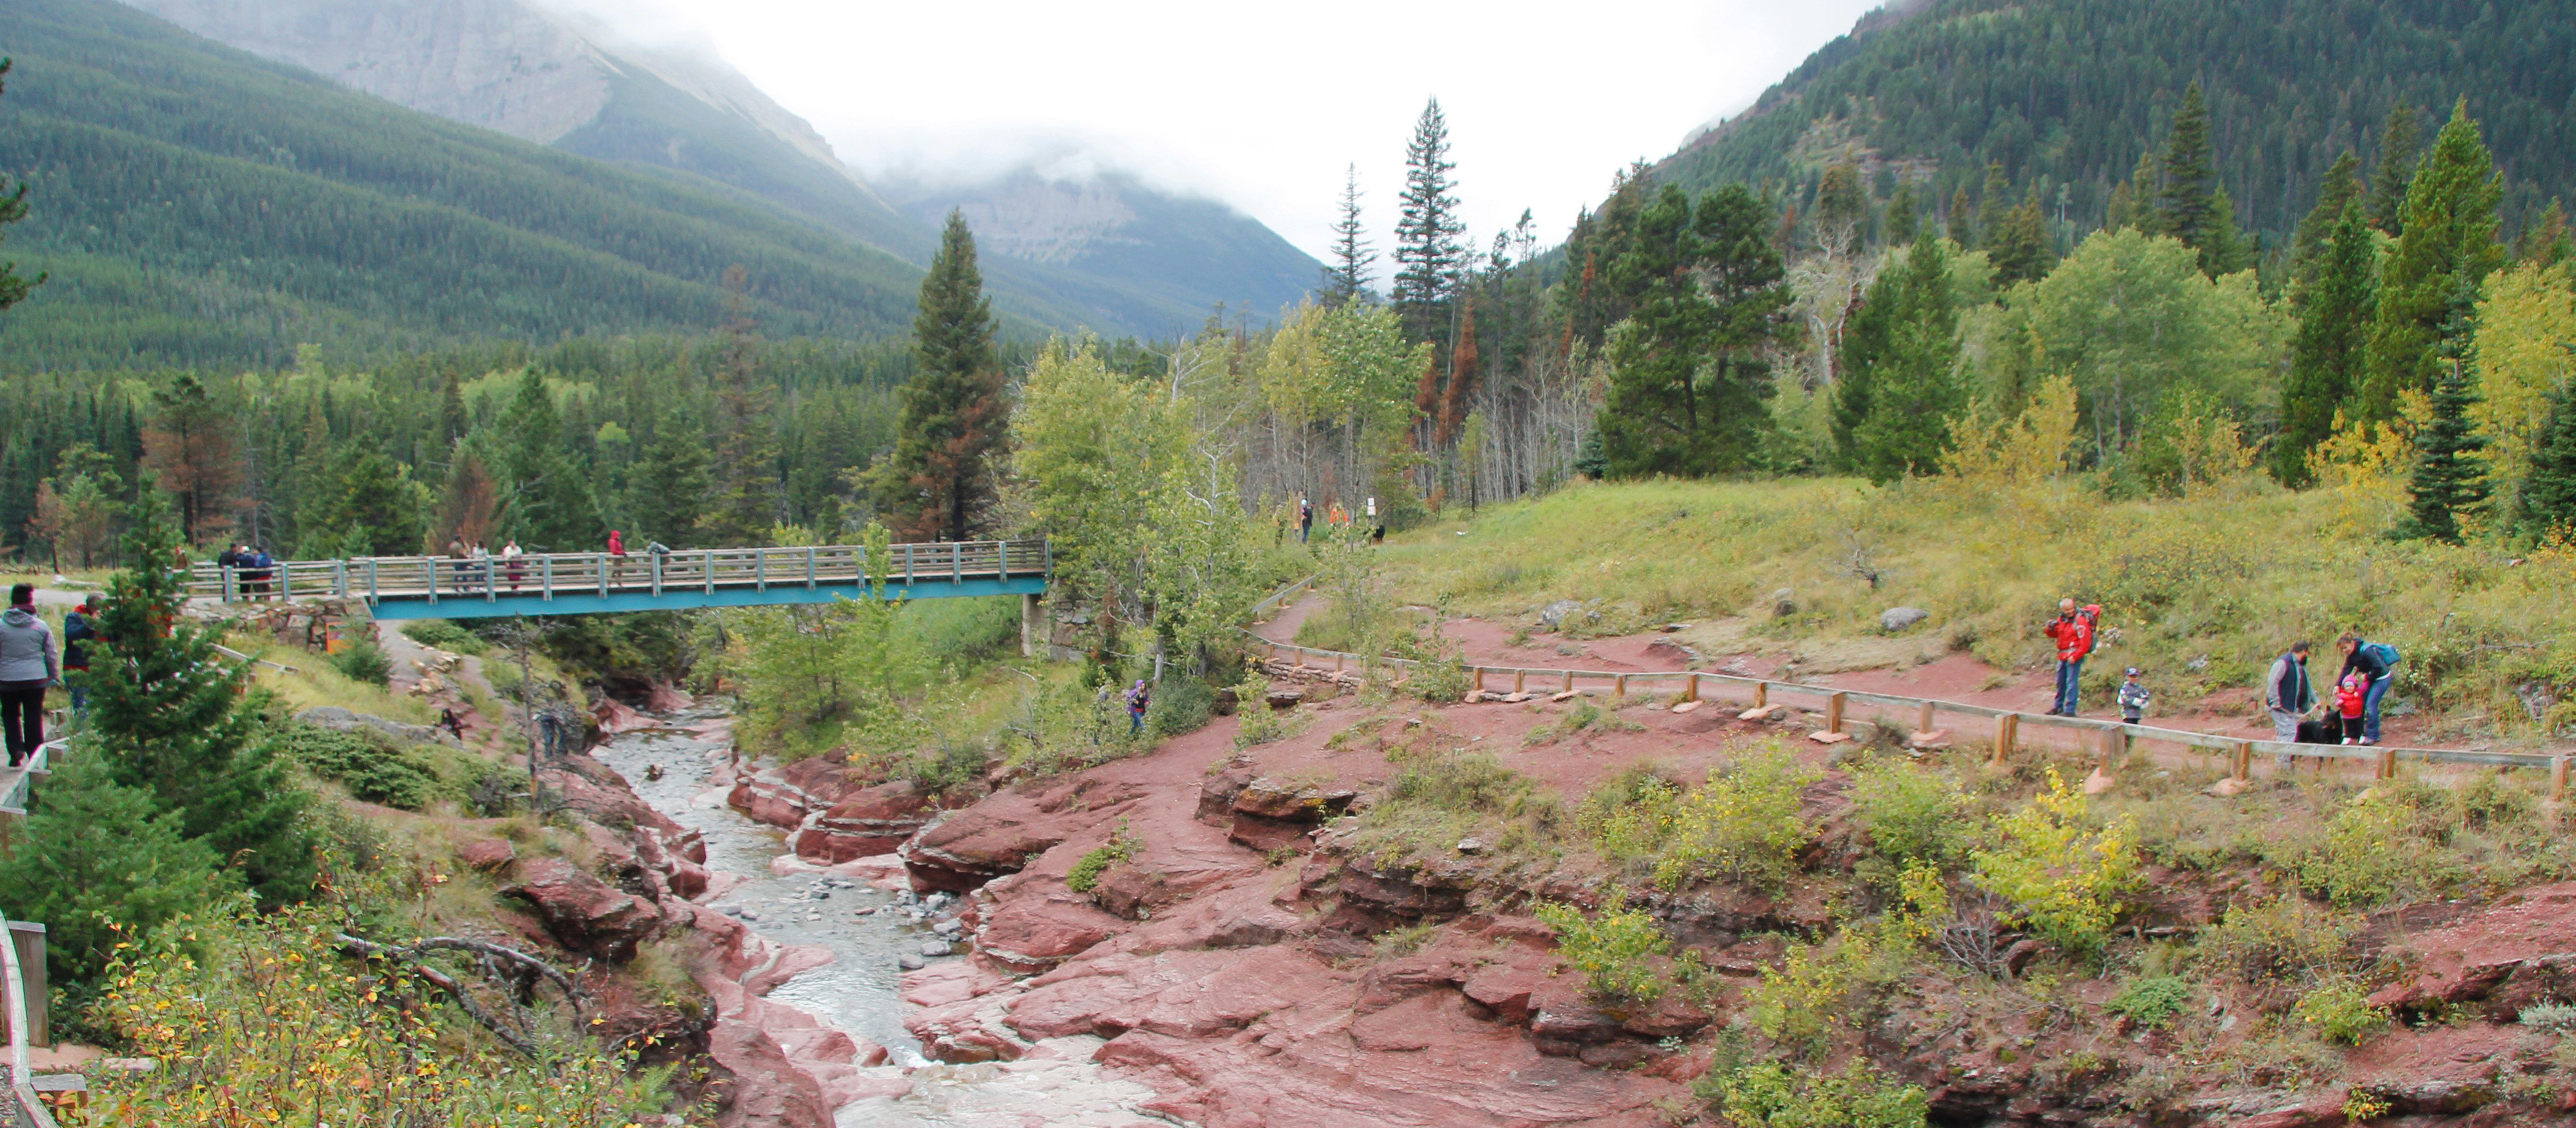 Red Rock Canyon in Alberta